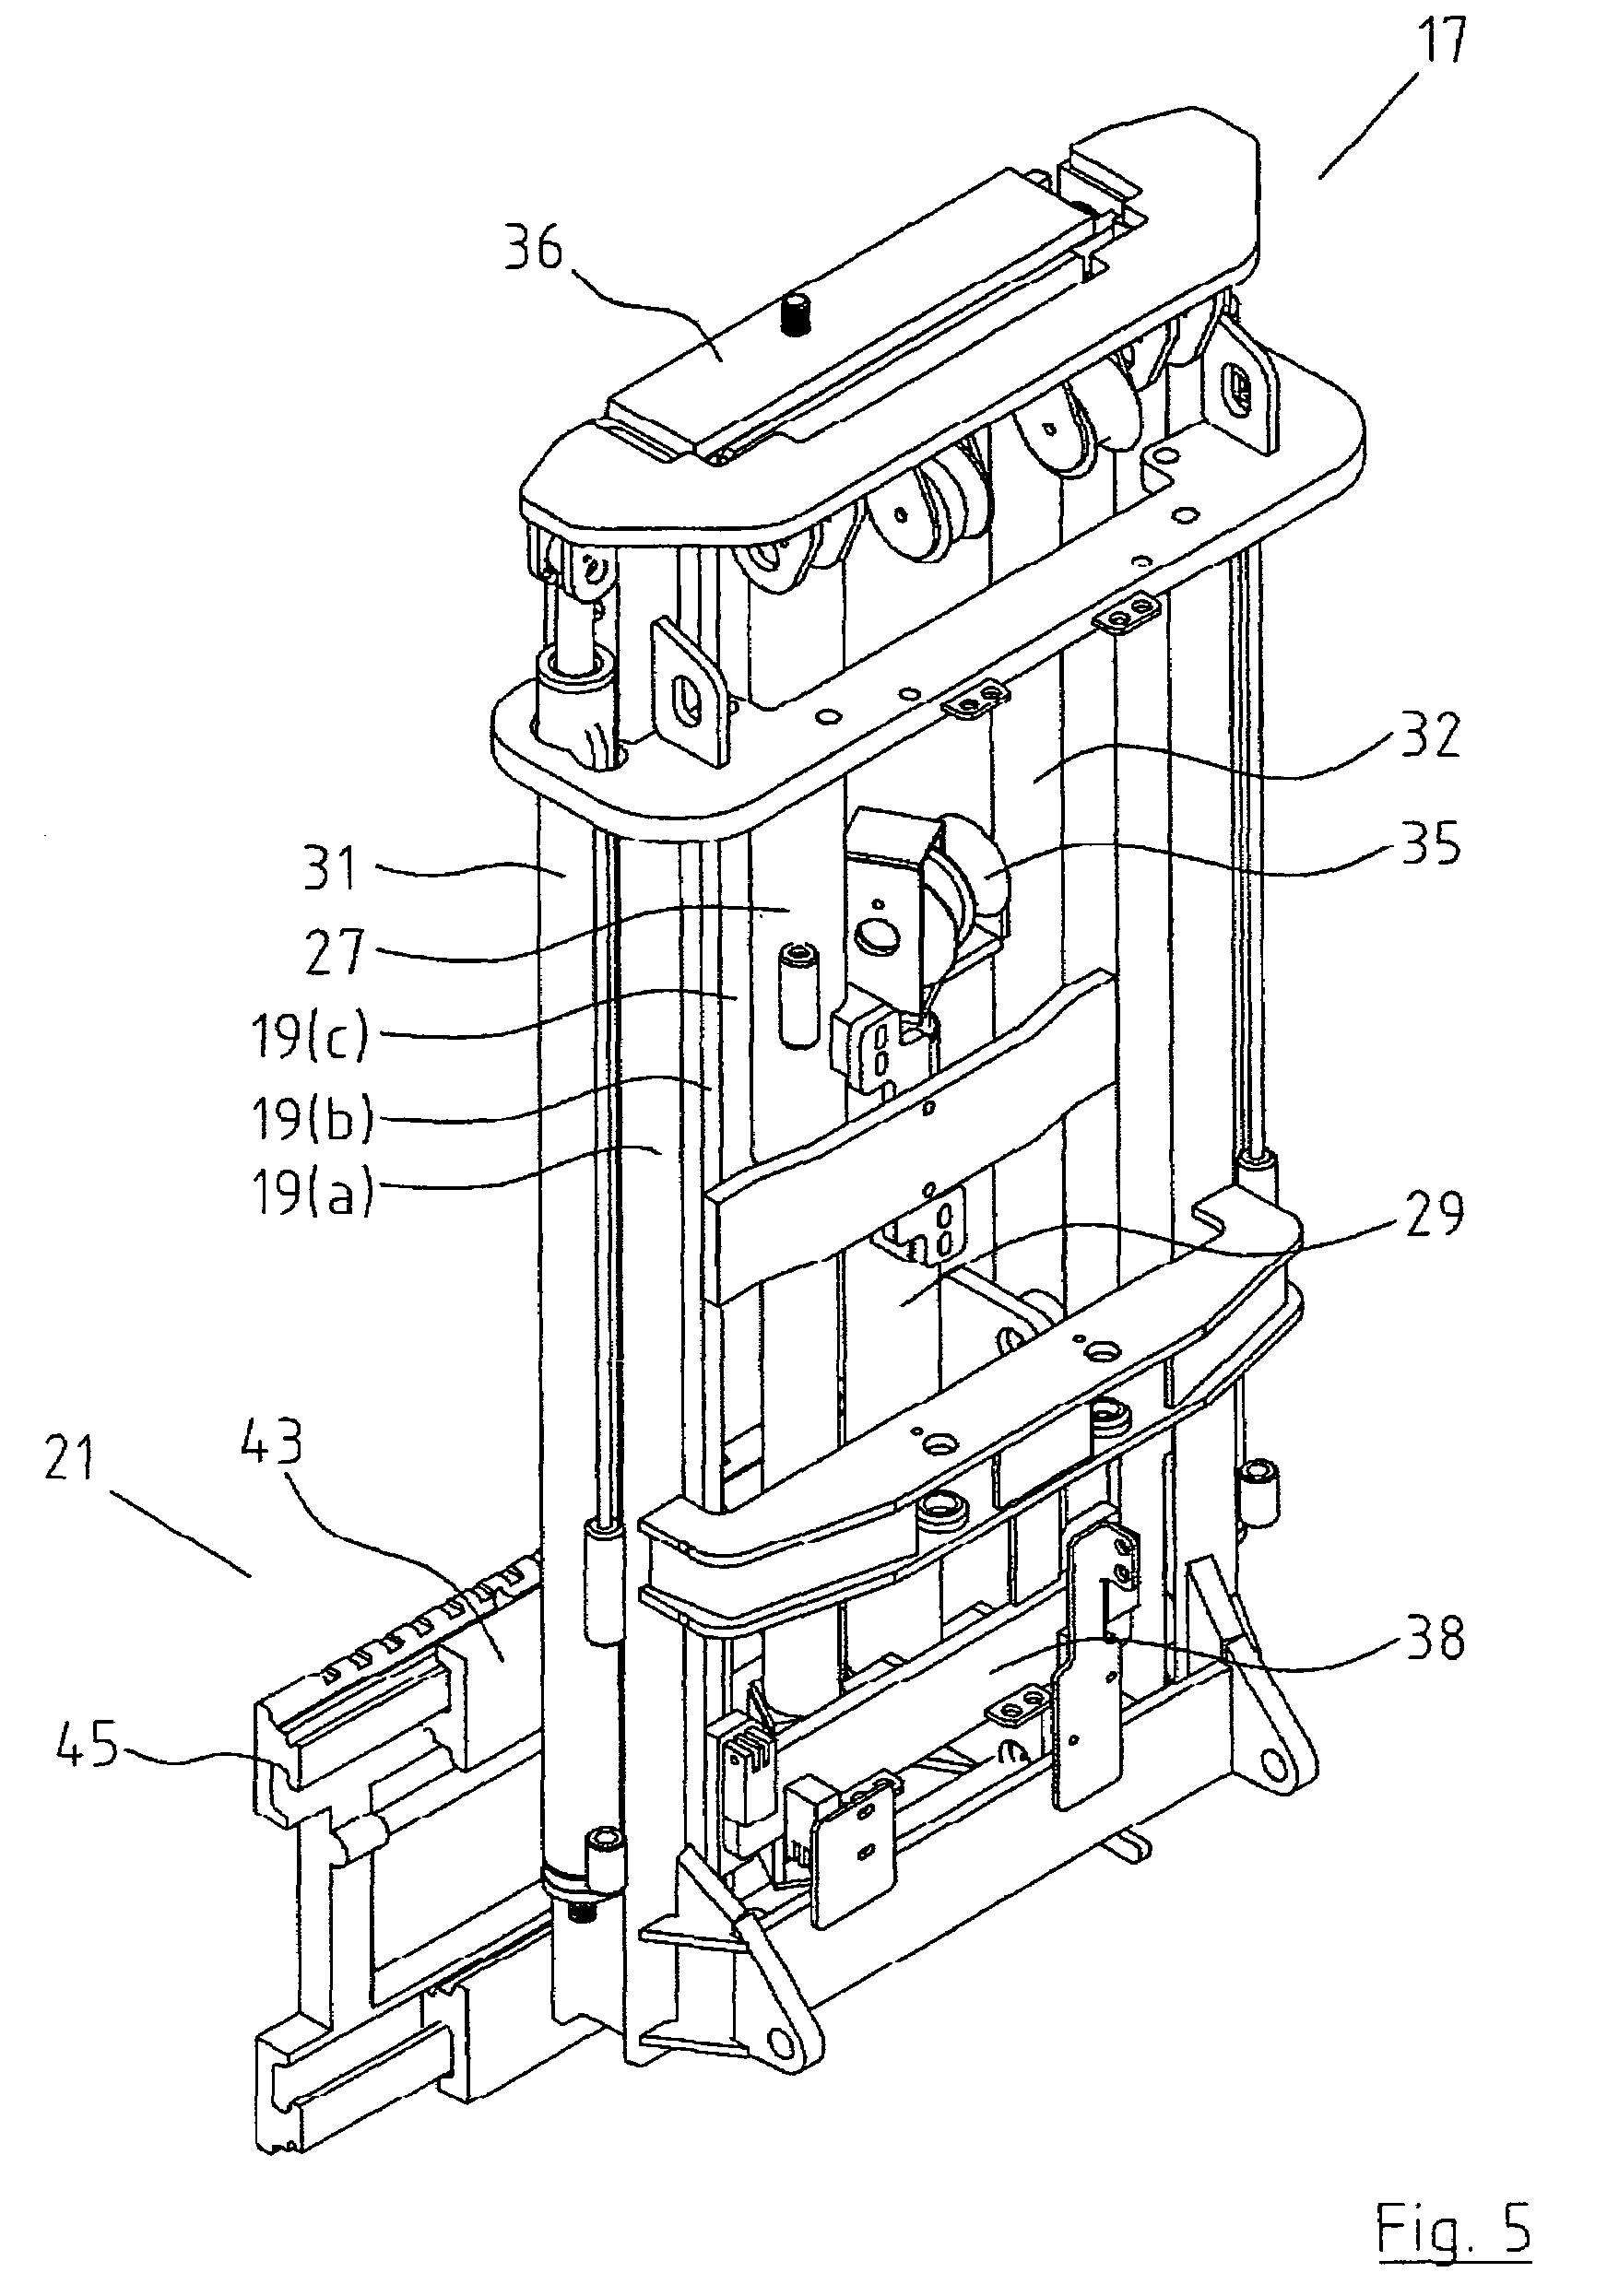 Patent Us7255202 - Truck Mounted Forklift With Double-acting Freelift Mast